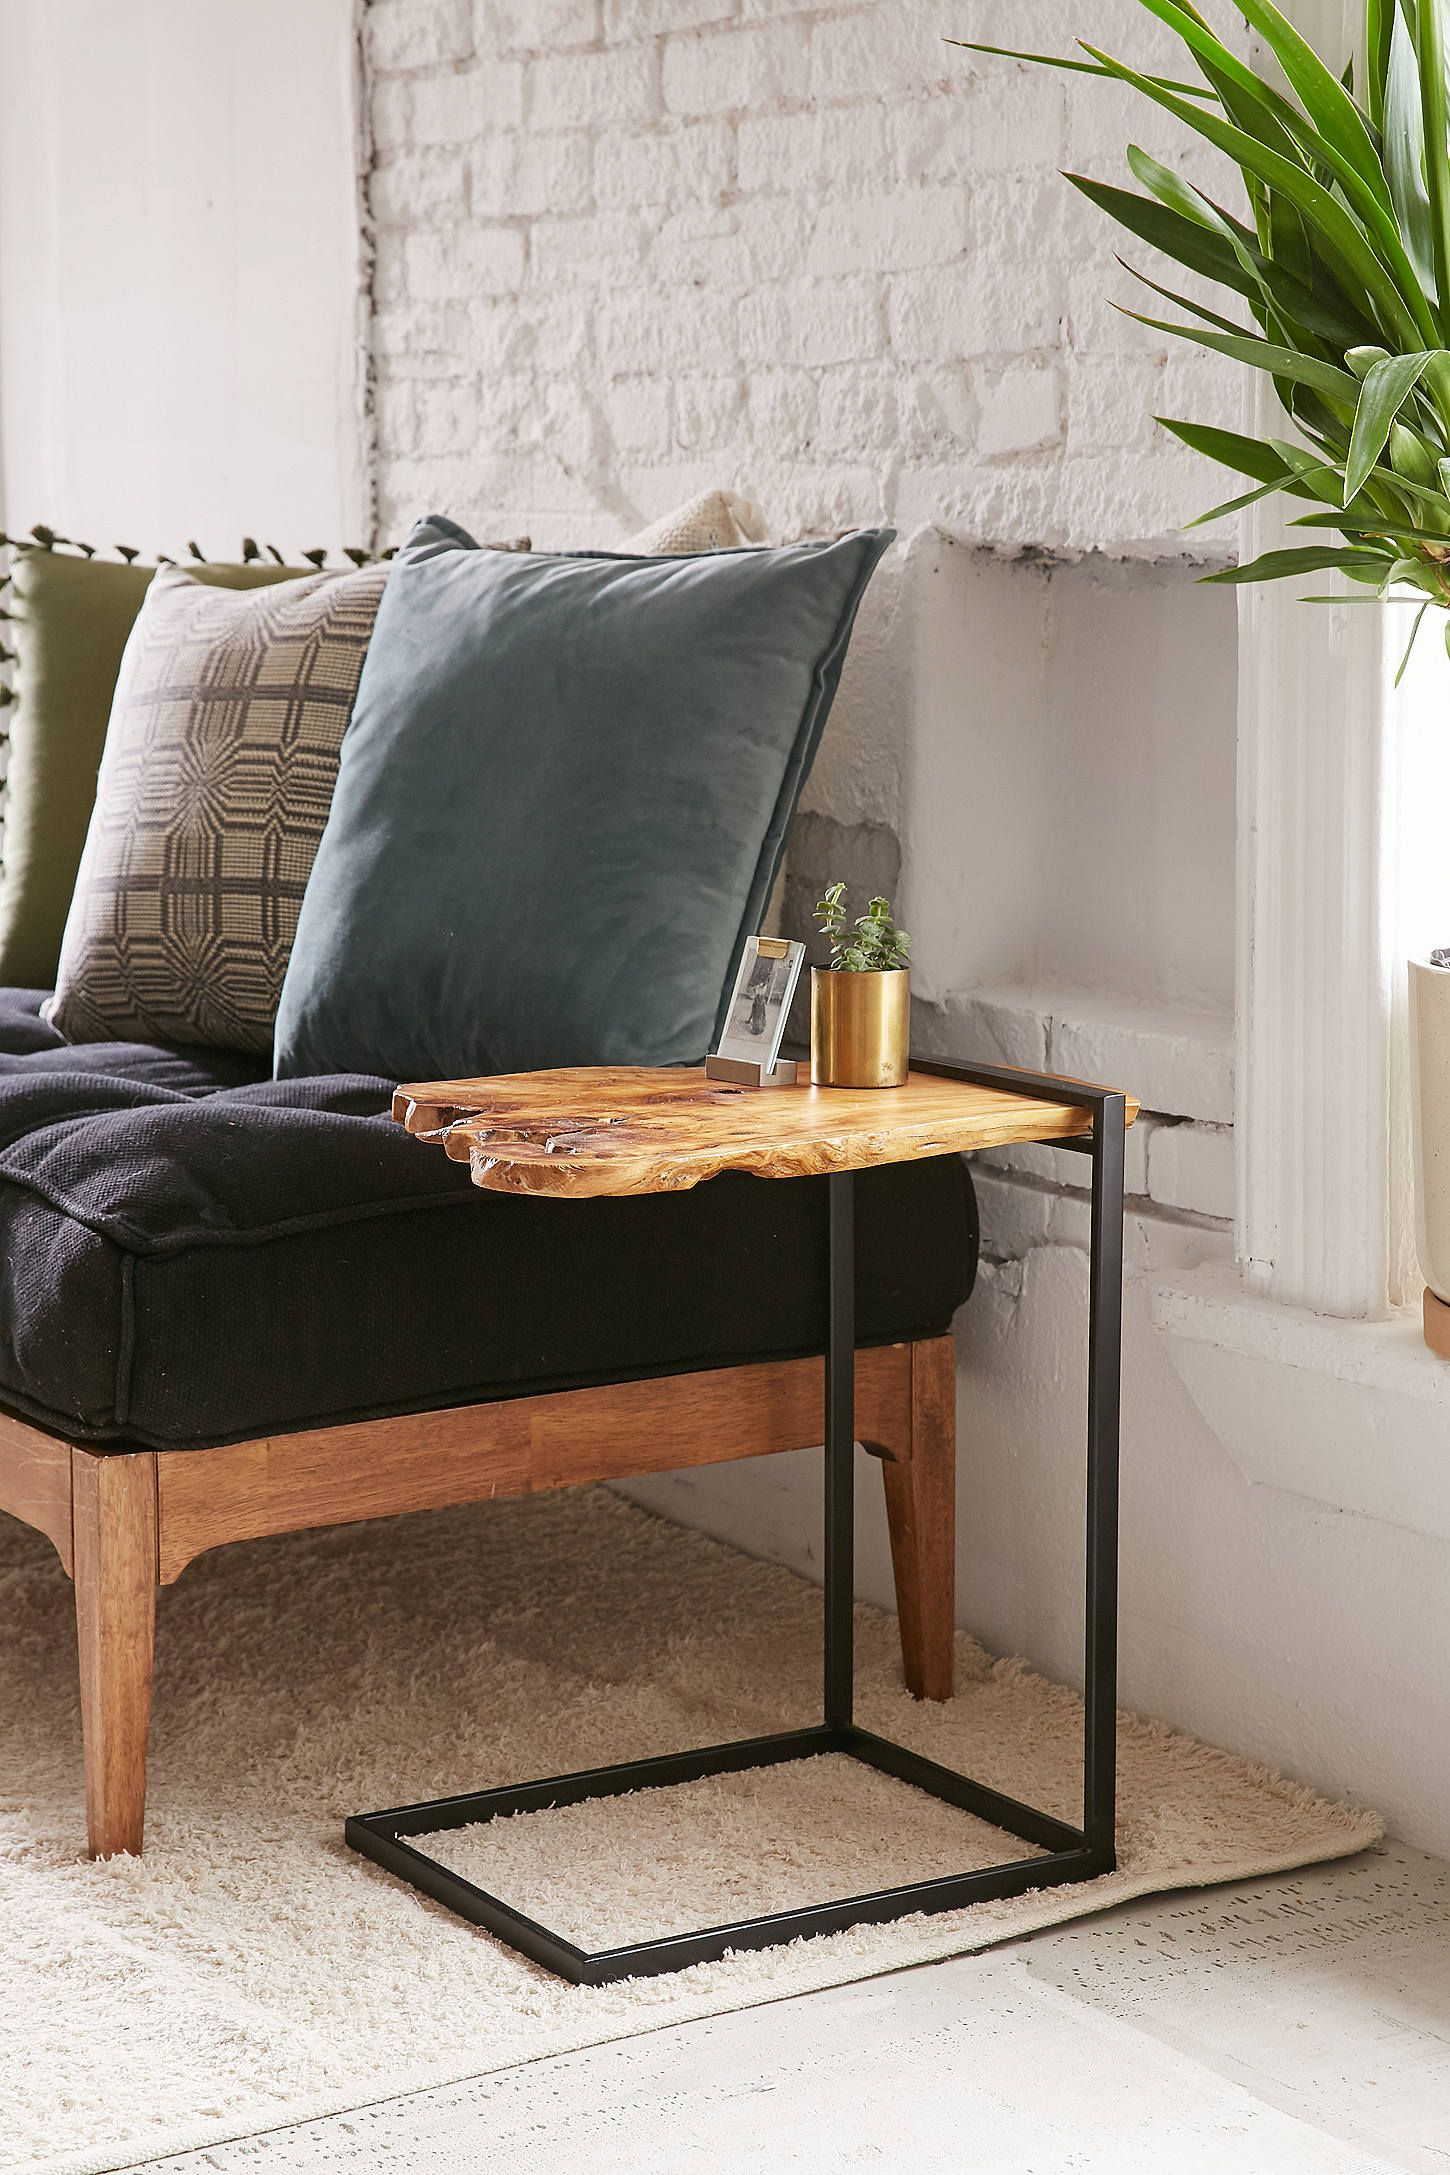 Elegant Shop Woodrow Live Edge Wood Side Table At Urban Outfitters Today. We Carry  All The Latest Styles, Colors And Brands For You To Choose From Right Here.